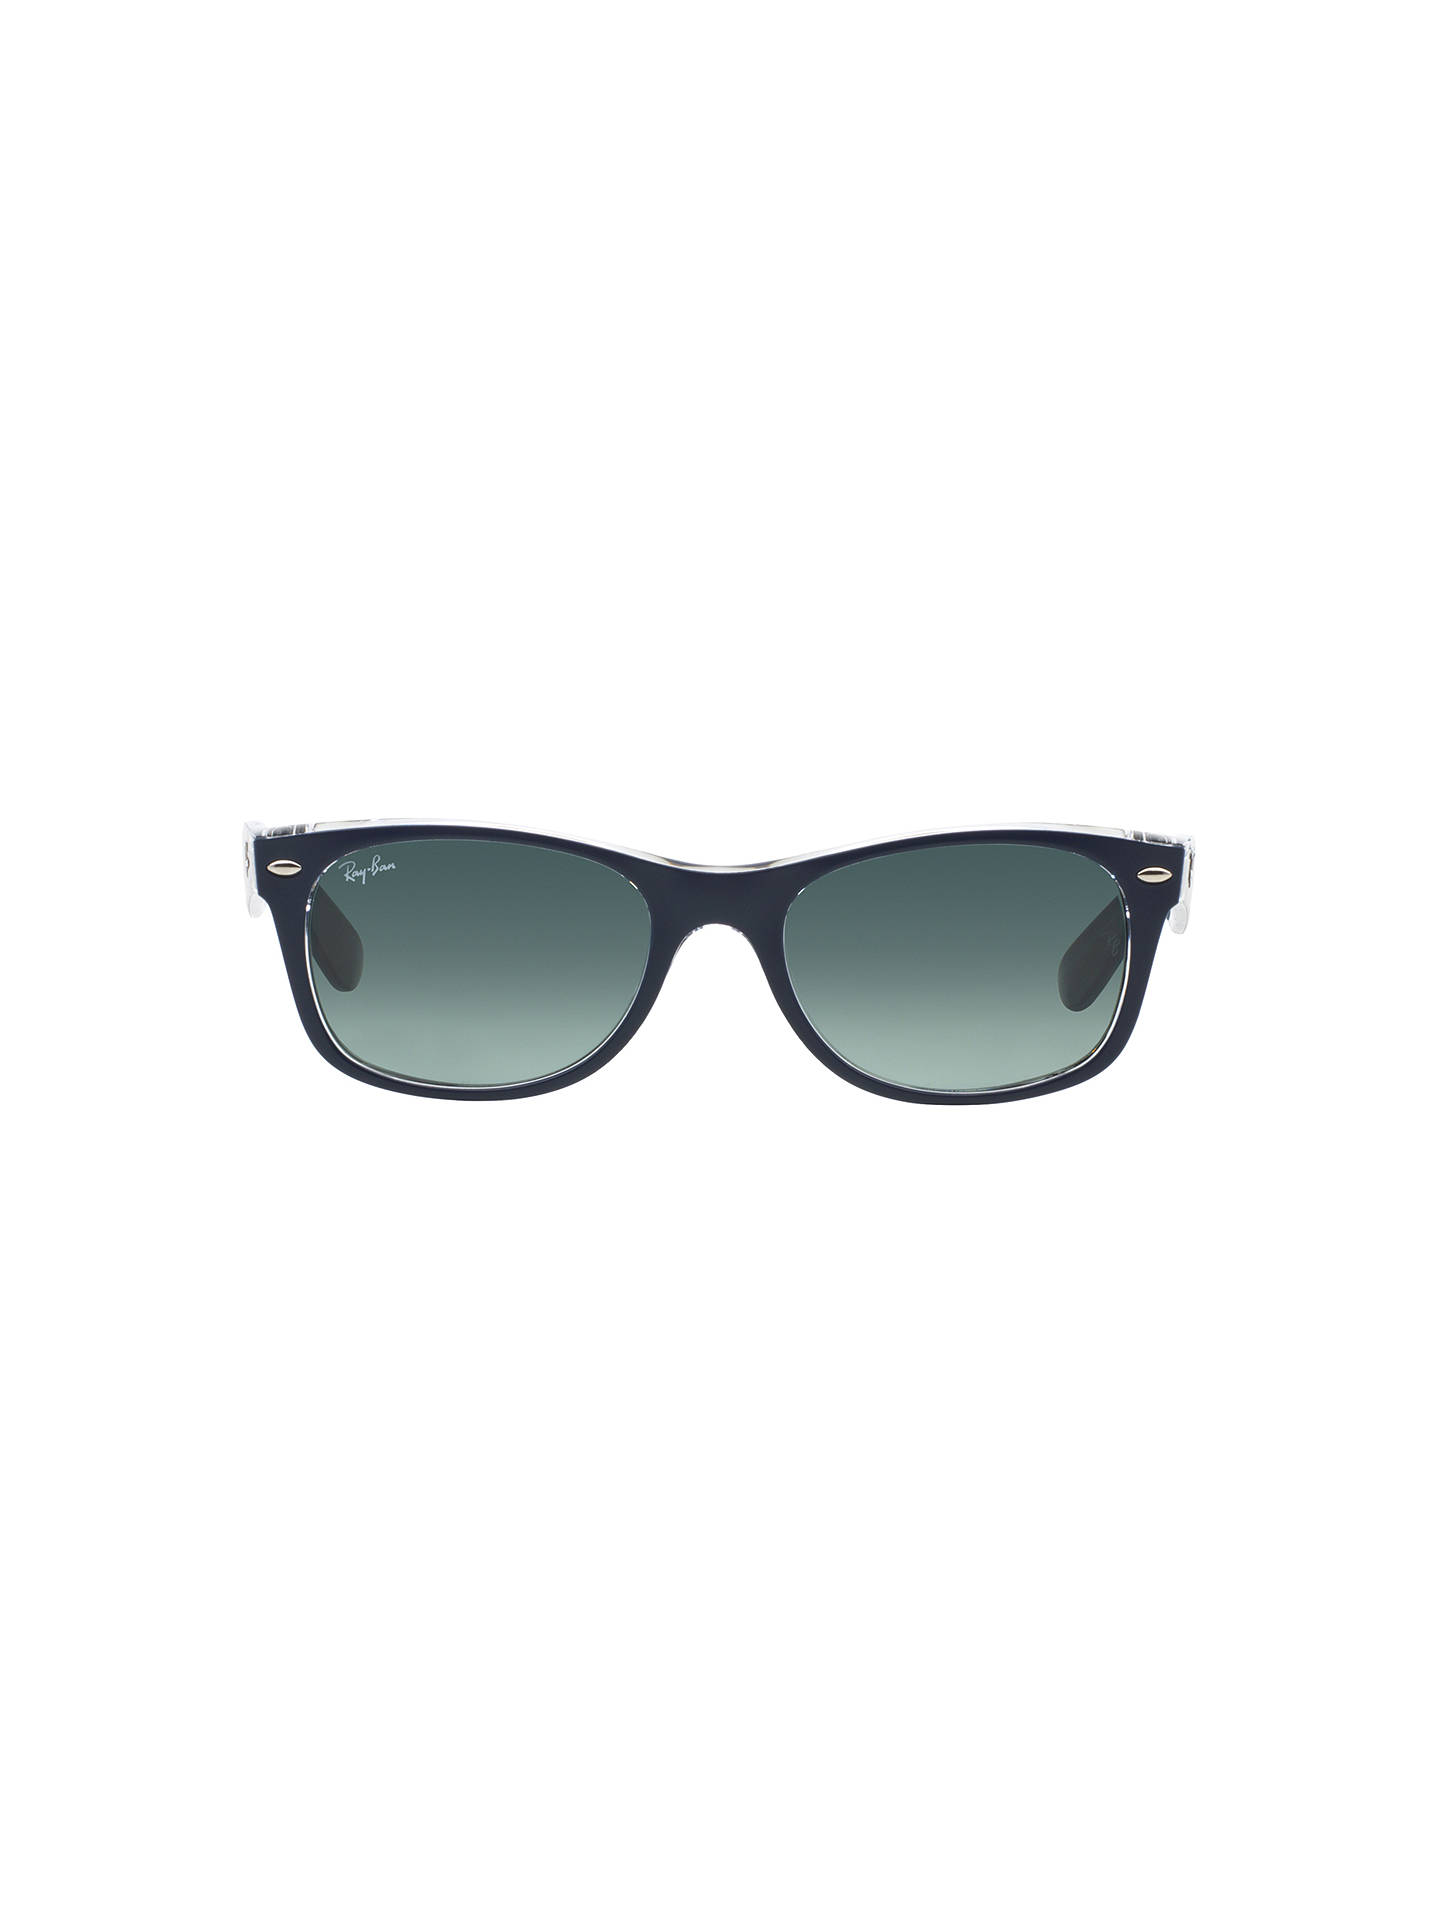 BuyRay-Ban RB2132 New Wayfarer Colour Mix Sunglasses, Navy Clear/Blue Gradient Online at johnlewis.com